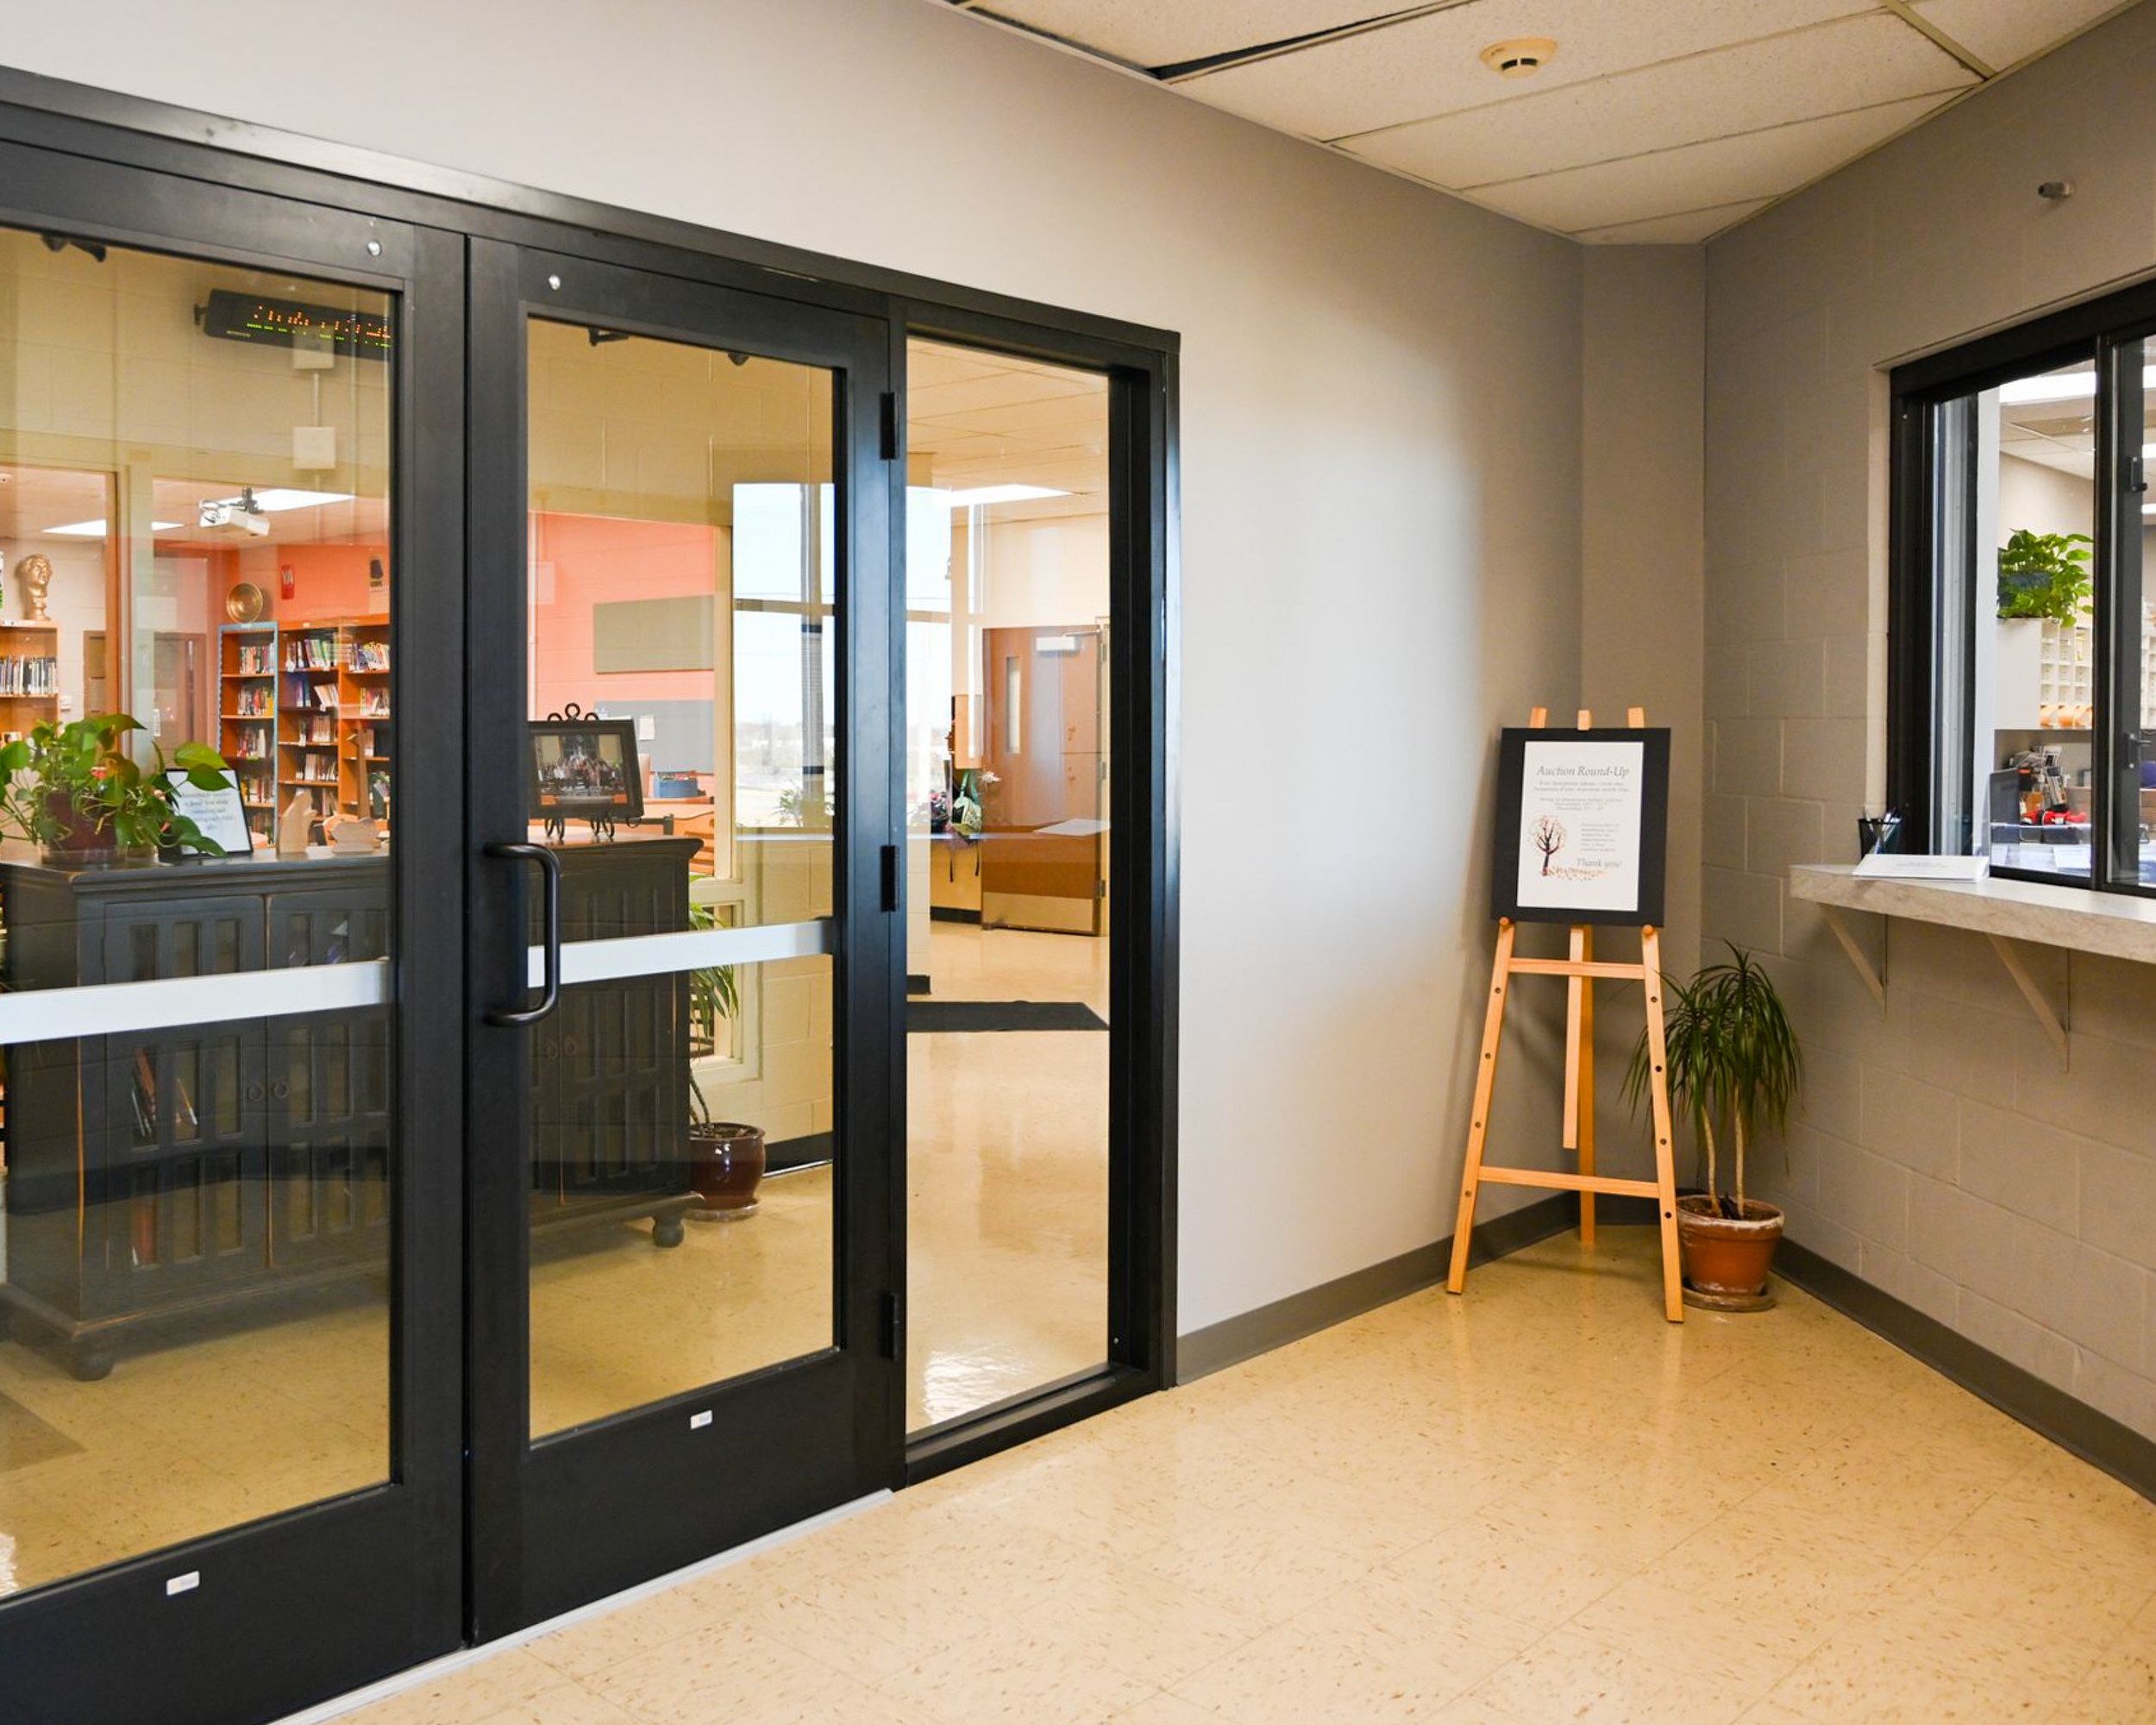 Enhancing education with more storage and modern security at Zion Lutheran School